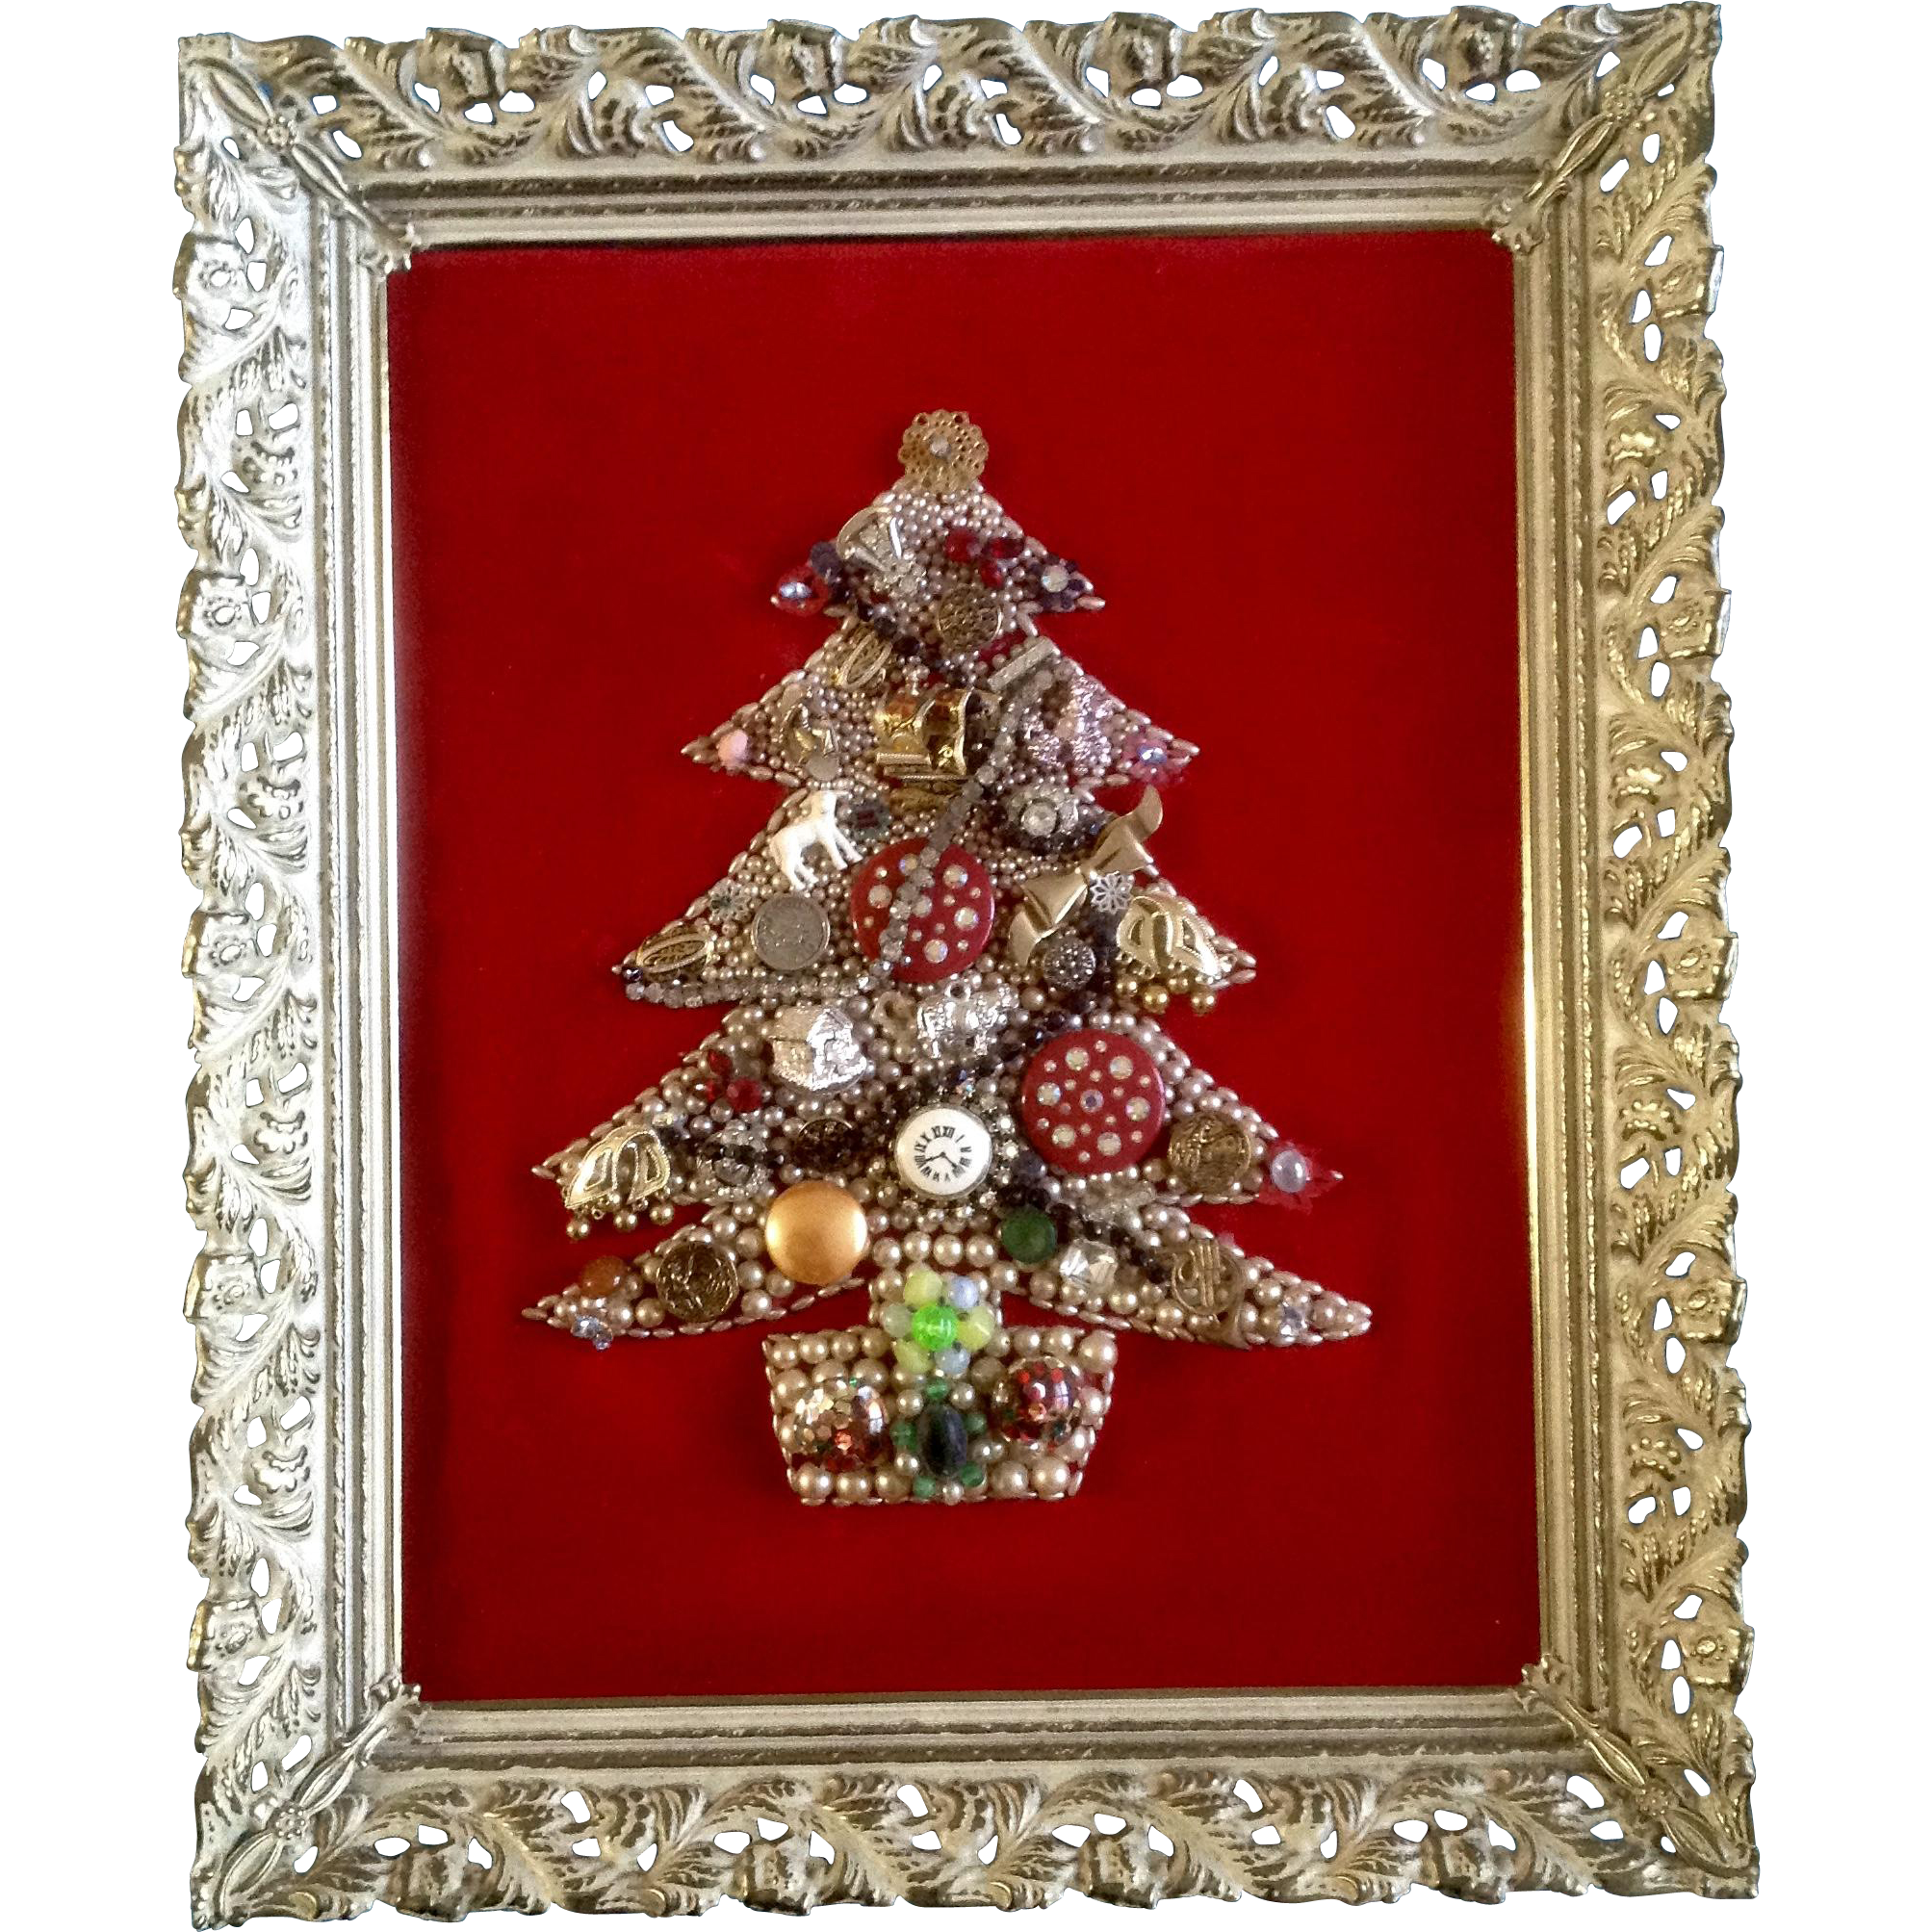 Costume Jewelry Christmas Tree Framed Picture Vintage Red Velvet ...